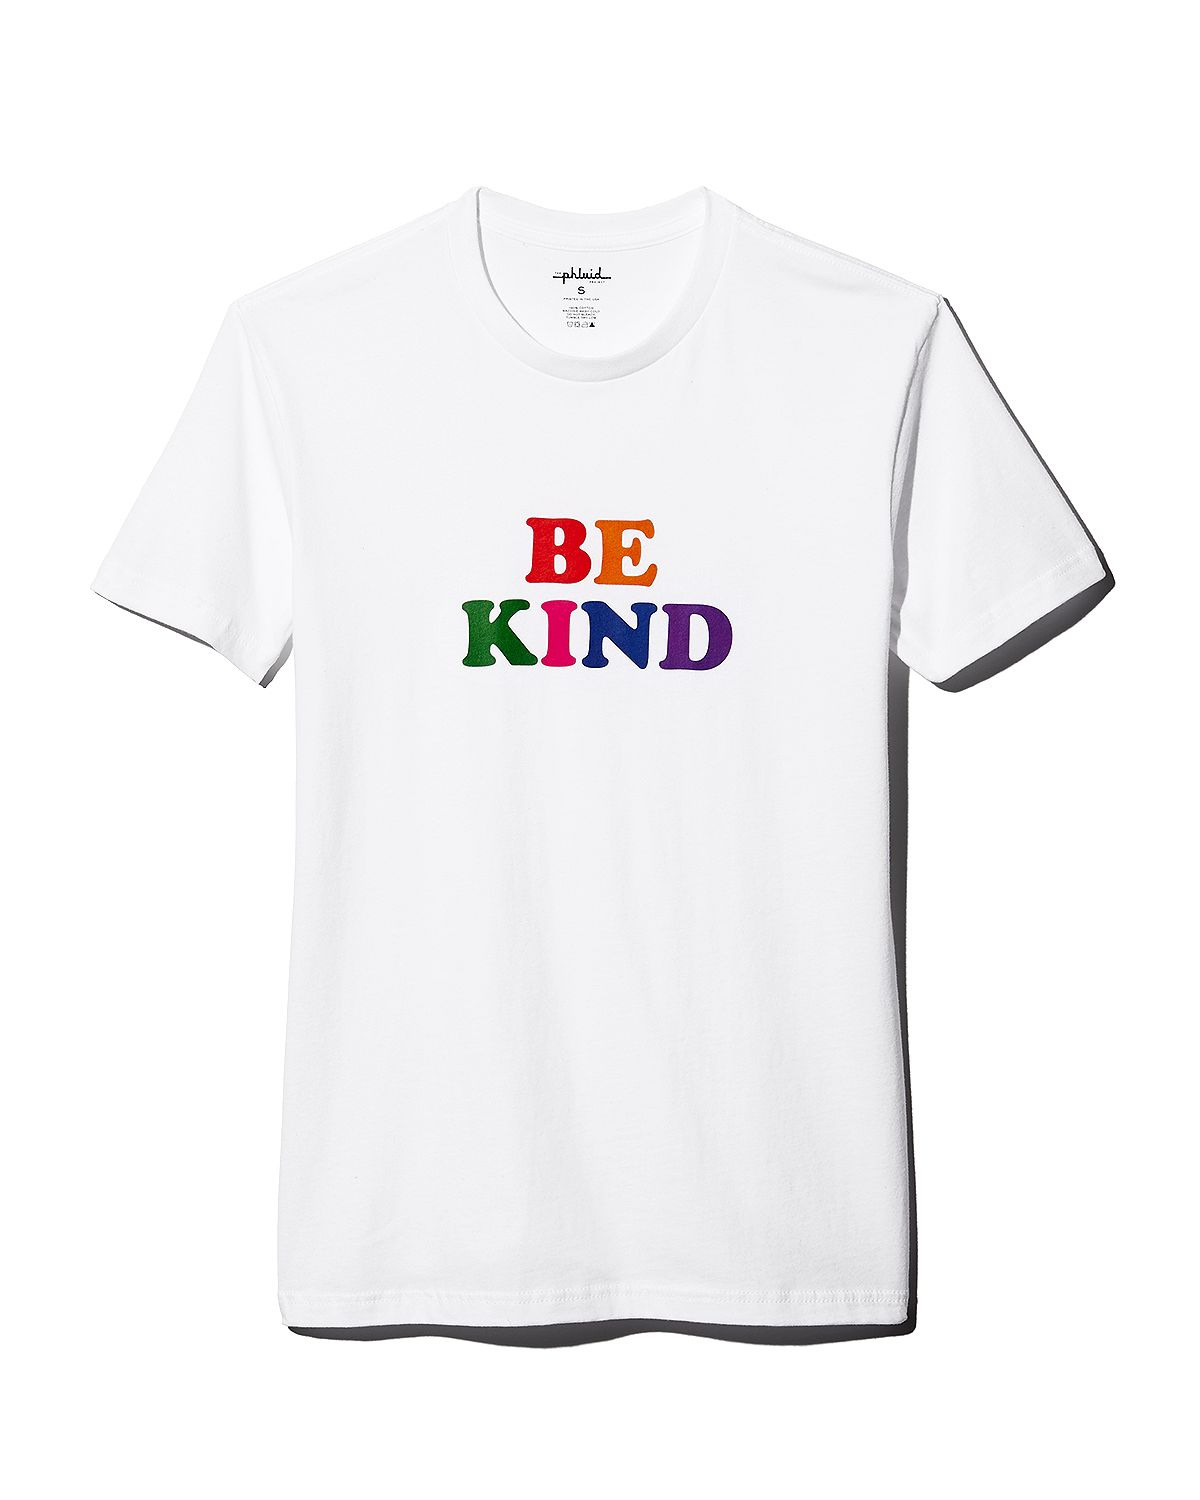 The Phluid Project Rainbow Be Kind Graphic Tee